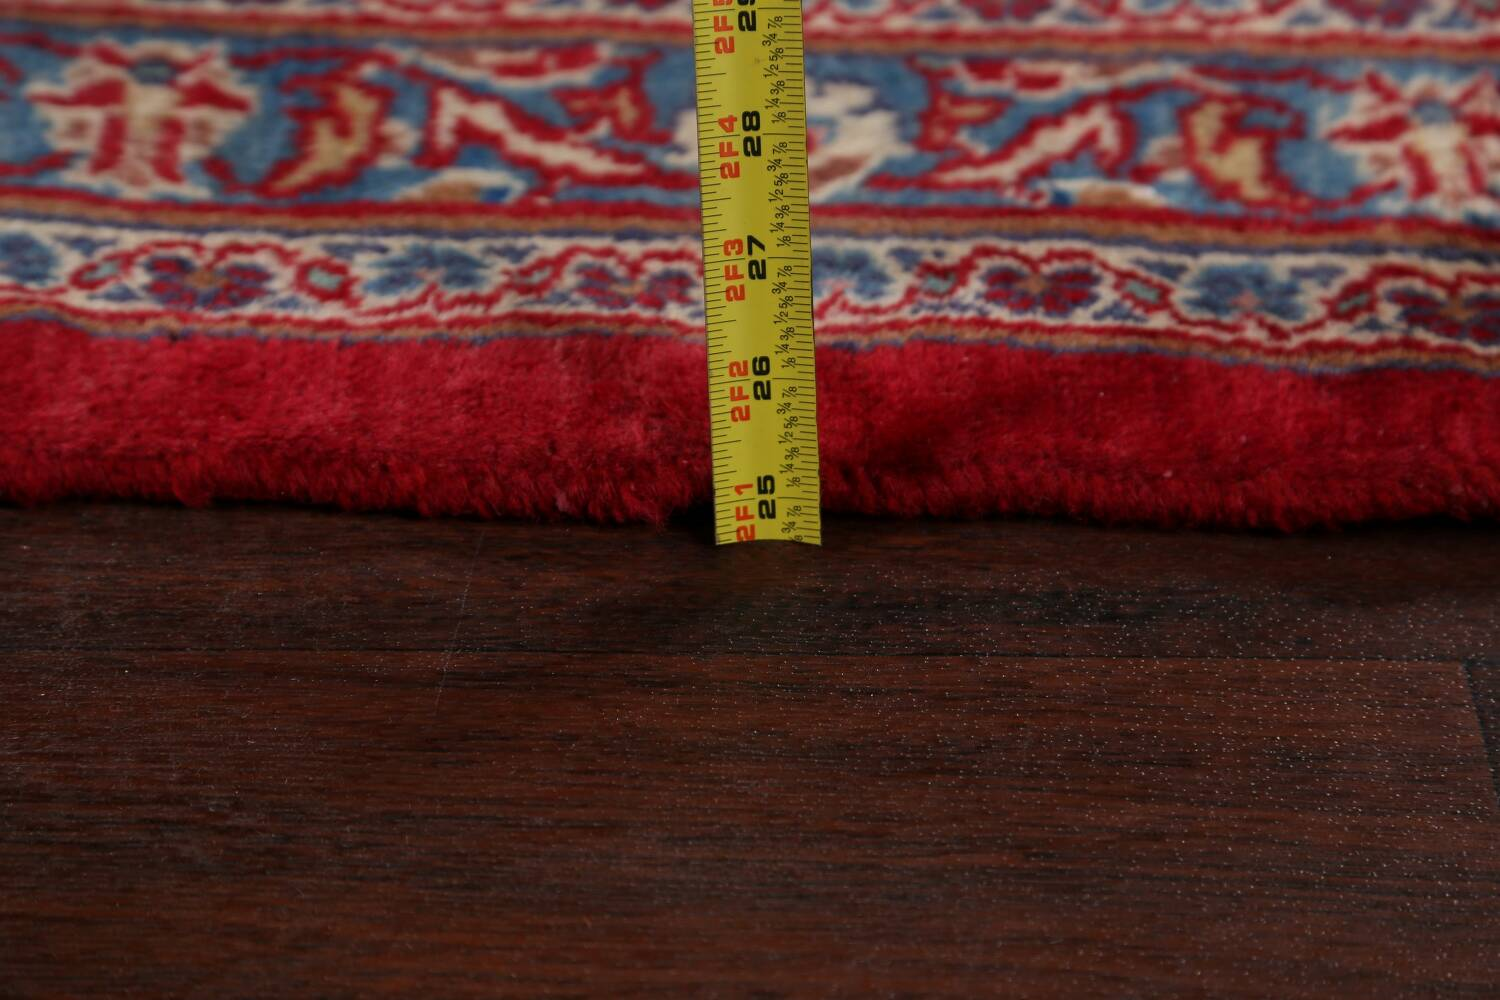 Vintage Floral Red Mashad Persian Area Rug 10x12 image 22